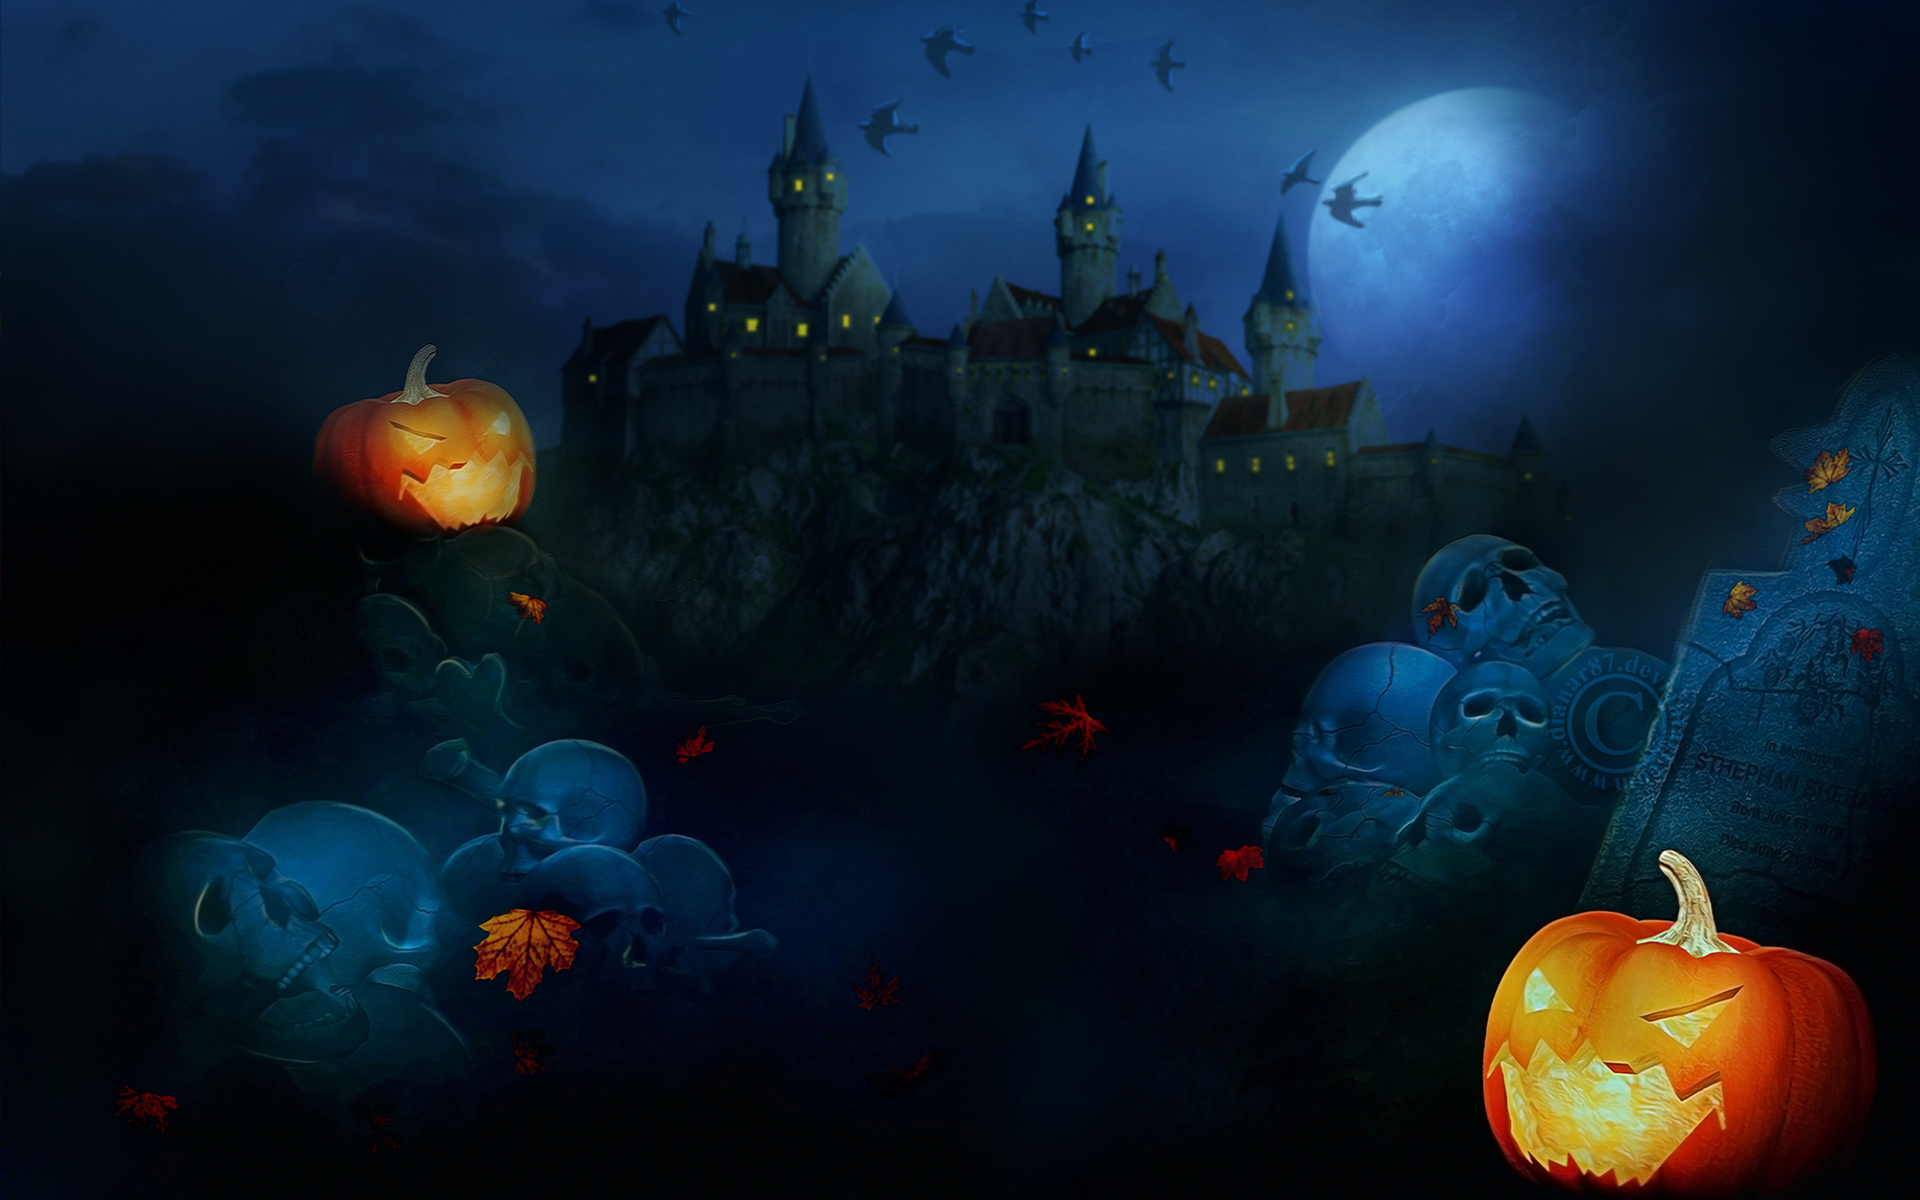 48 scary halloween wallpapers and screensavers on - Scary halloween wallpaper ...